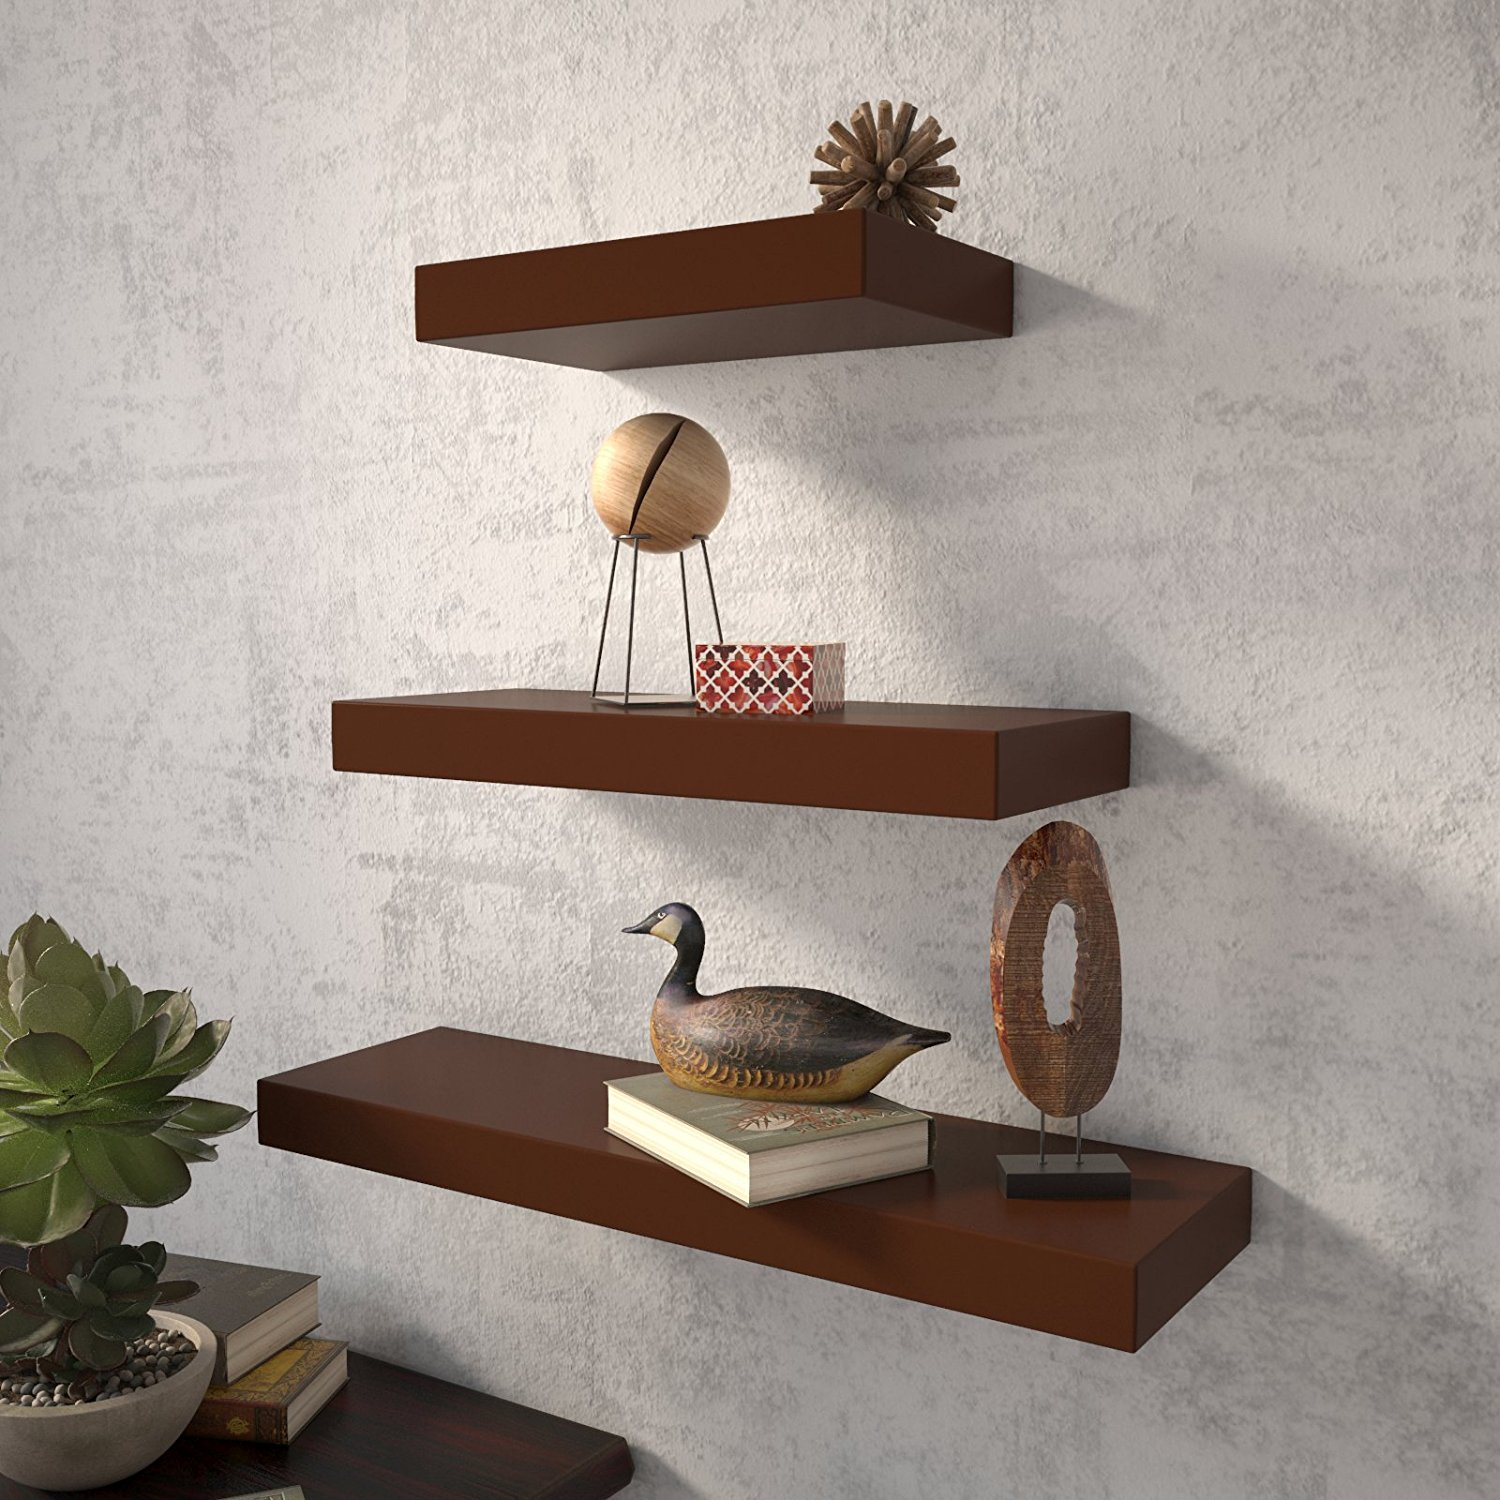 Wall decor wall shelf set of 3 floating shelves organizer for Decor nation